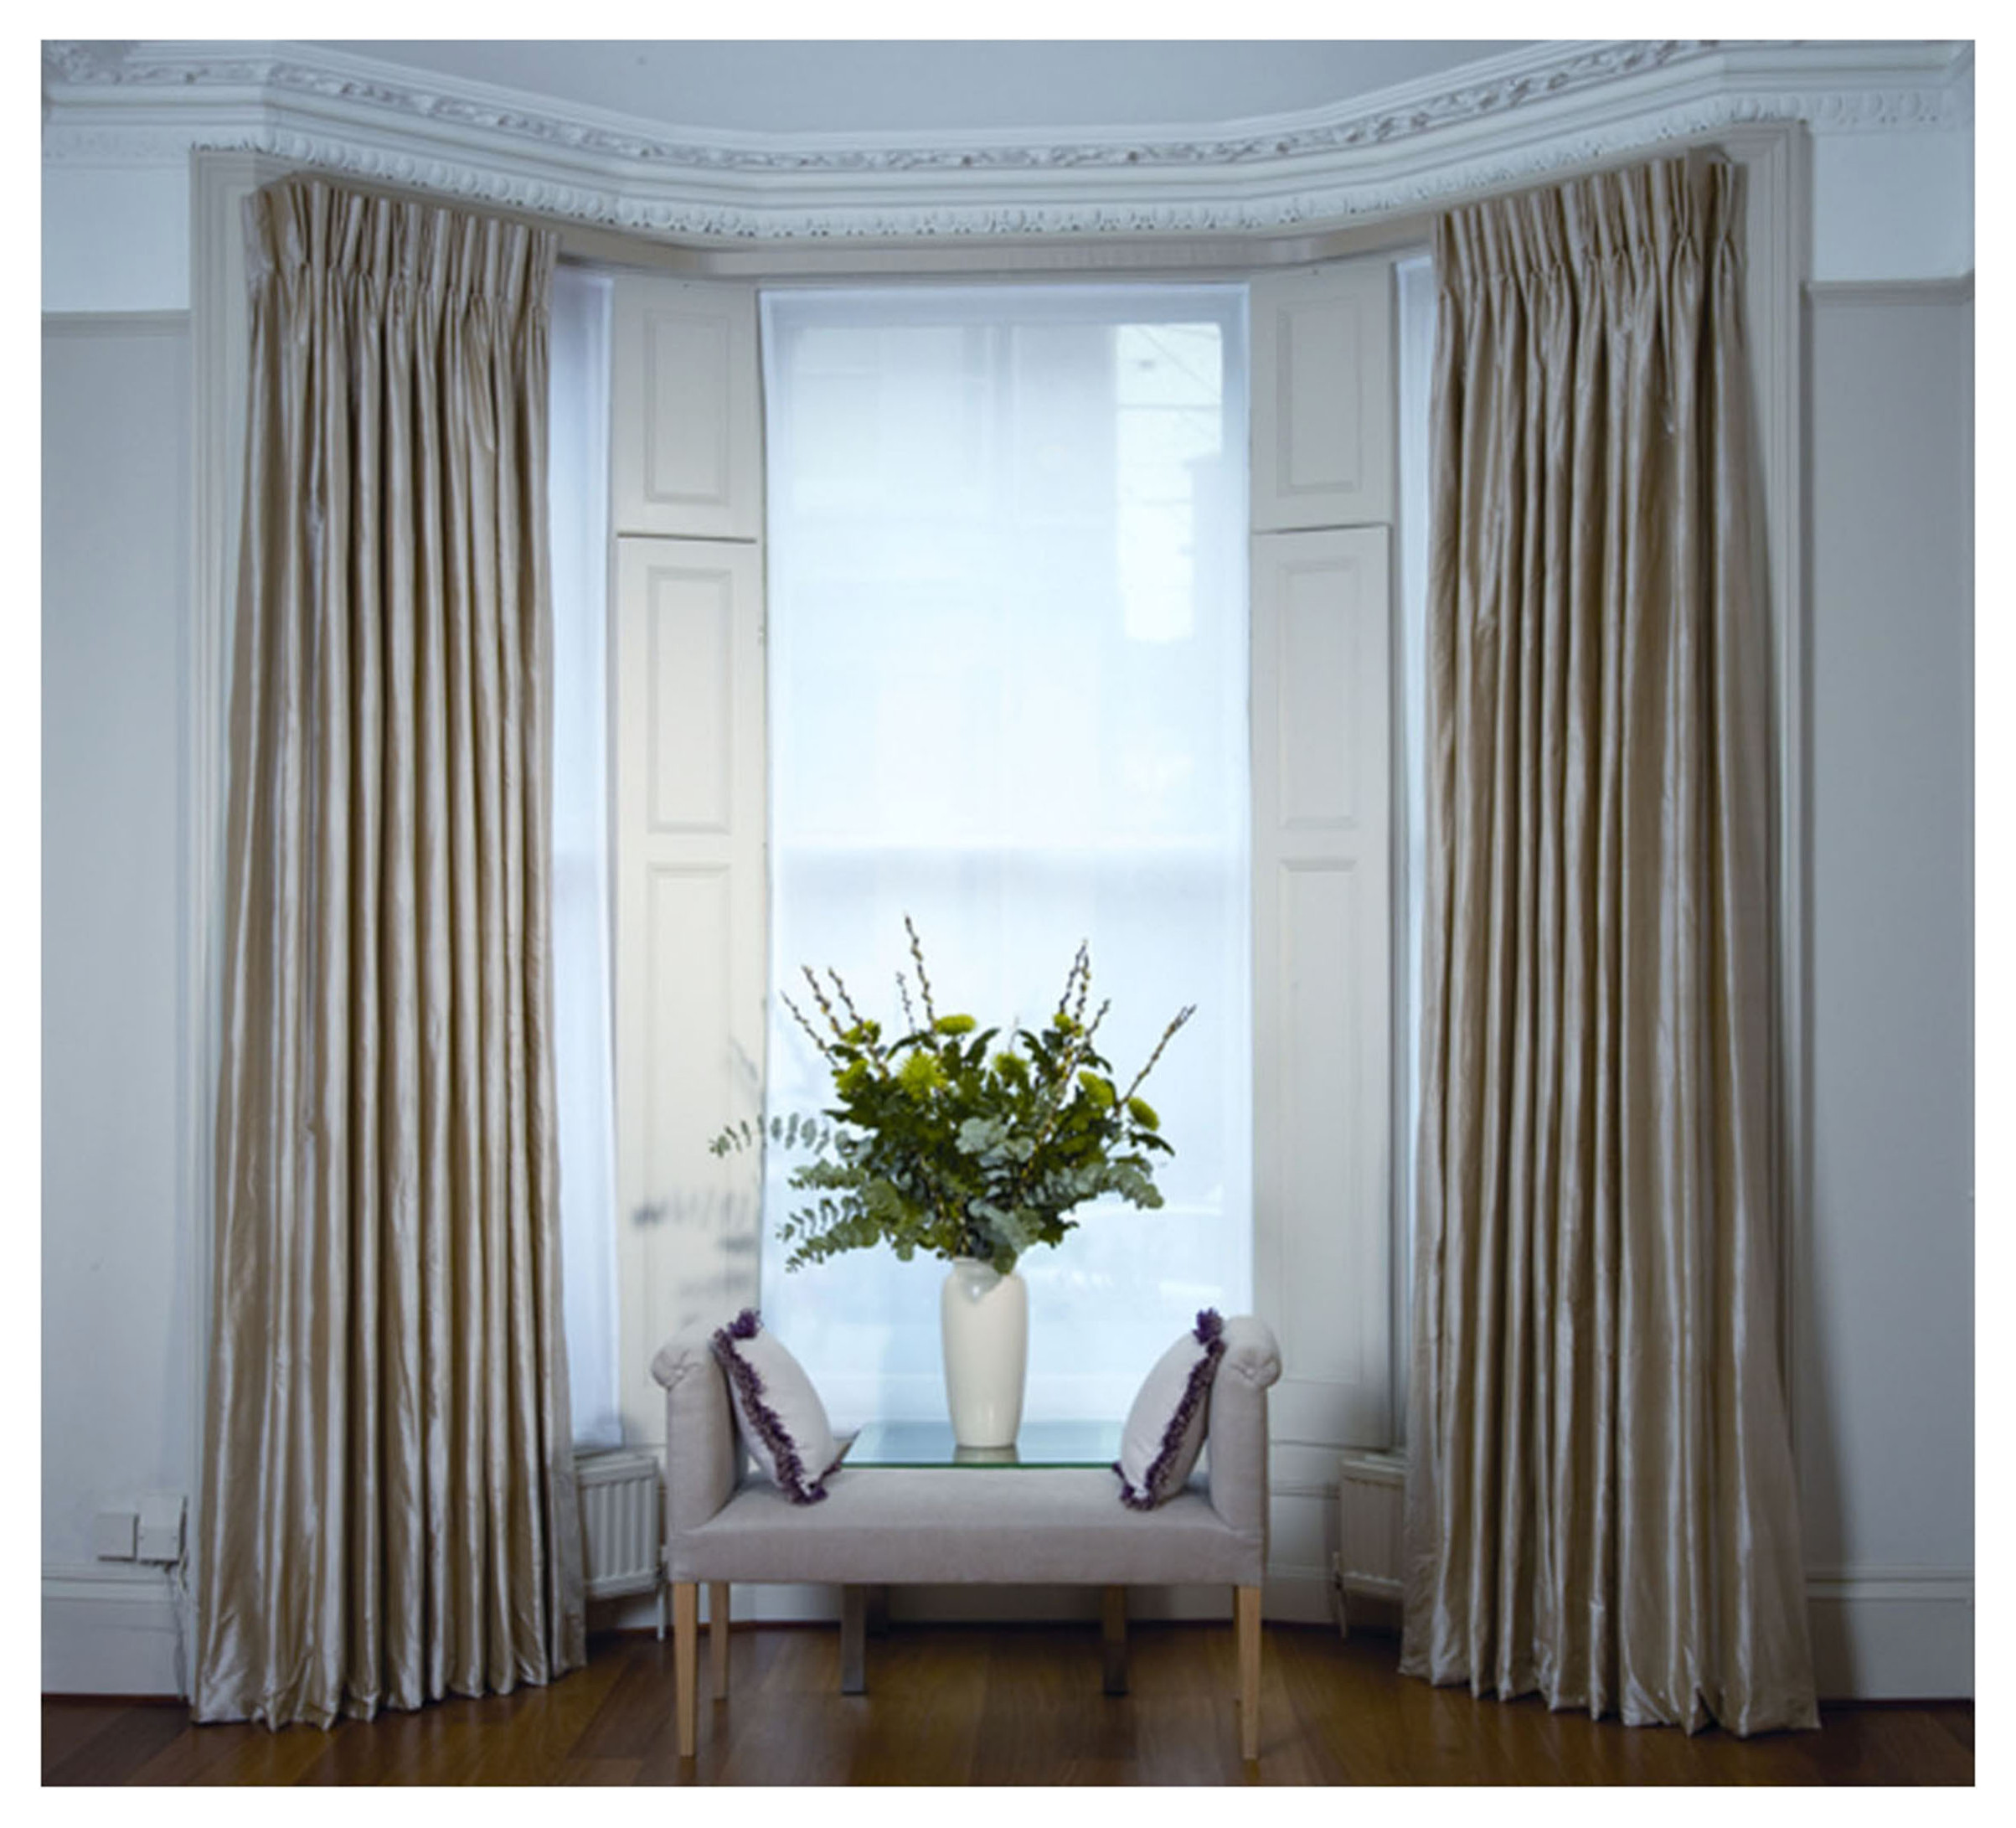 How To Hang Eyelet Curtains On A Bay Window